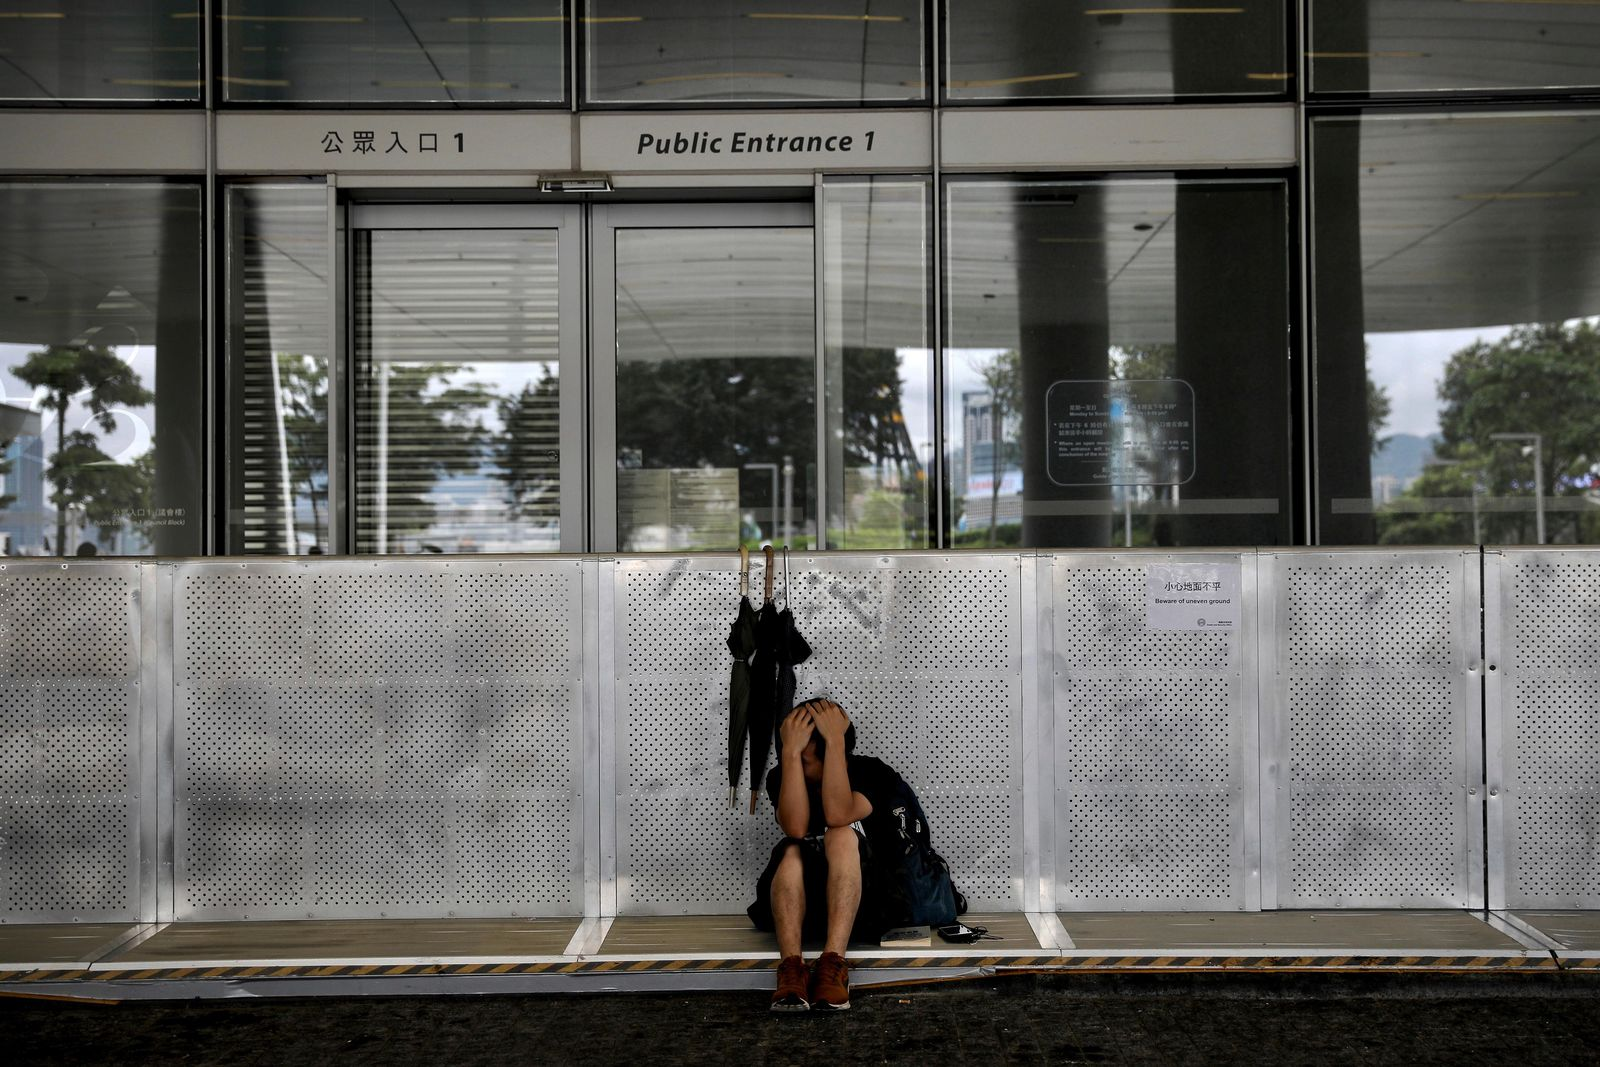 A protester takes a rest outside the Legislative Council in Hong Kong, Tuesday, June 18, 2019. Hong Kong's government headquarters reopened Tuesday as the number of protesters outside dwindled to a few dozen and life returned to normal in the former British colony. (AP Photo/Vincent Yu)